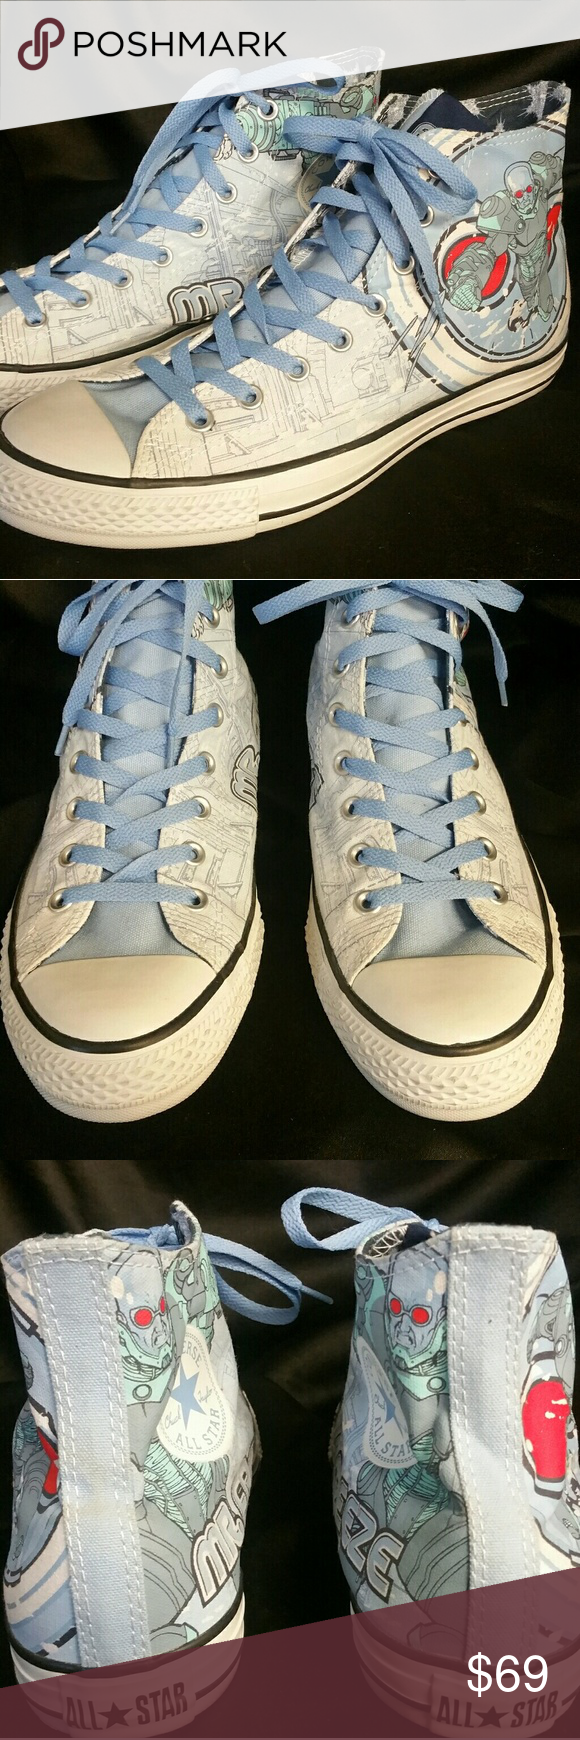 88b7b9cd182 D C Chuck Taylor s Mr. Freeze Converse Rare   new without box...circa  2000 s Converse Shoes Sneakers